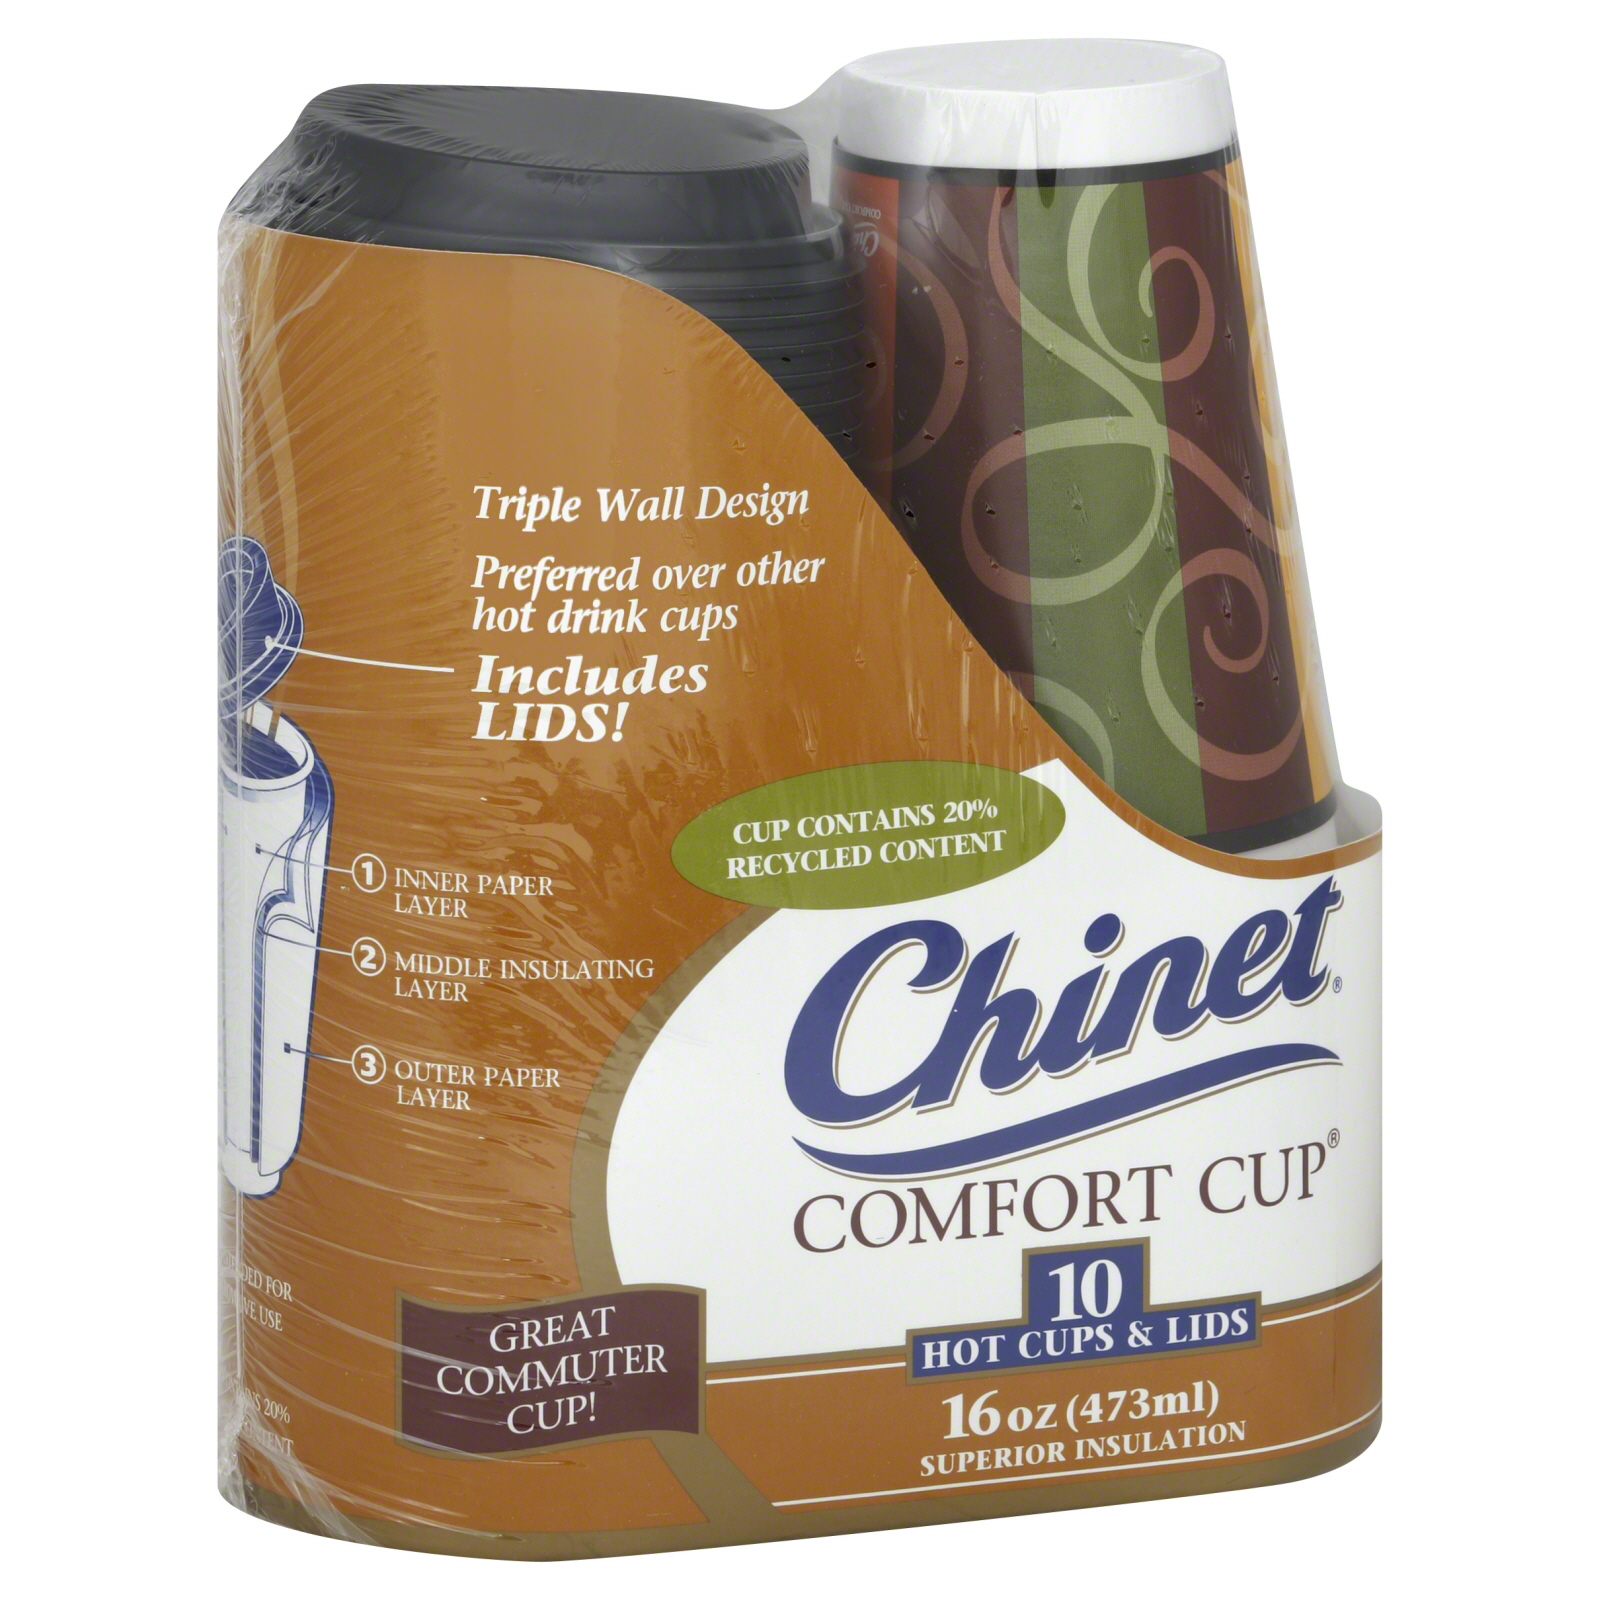 Chinet Comfort Cup Hot Cups & Lids 16 Oz Superior Insulation 10 - Food Grocery Paper